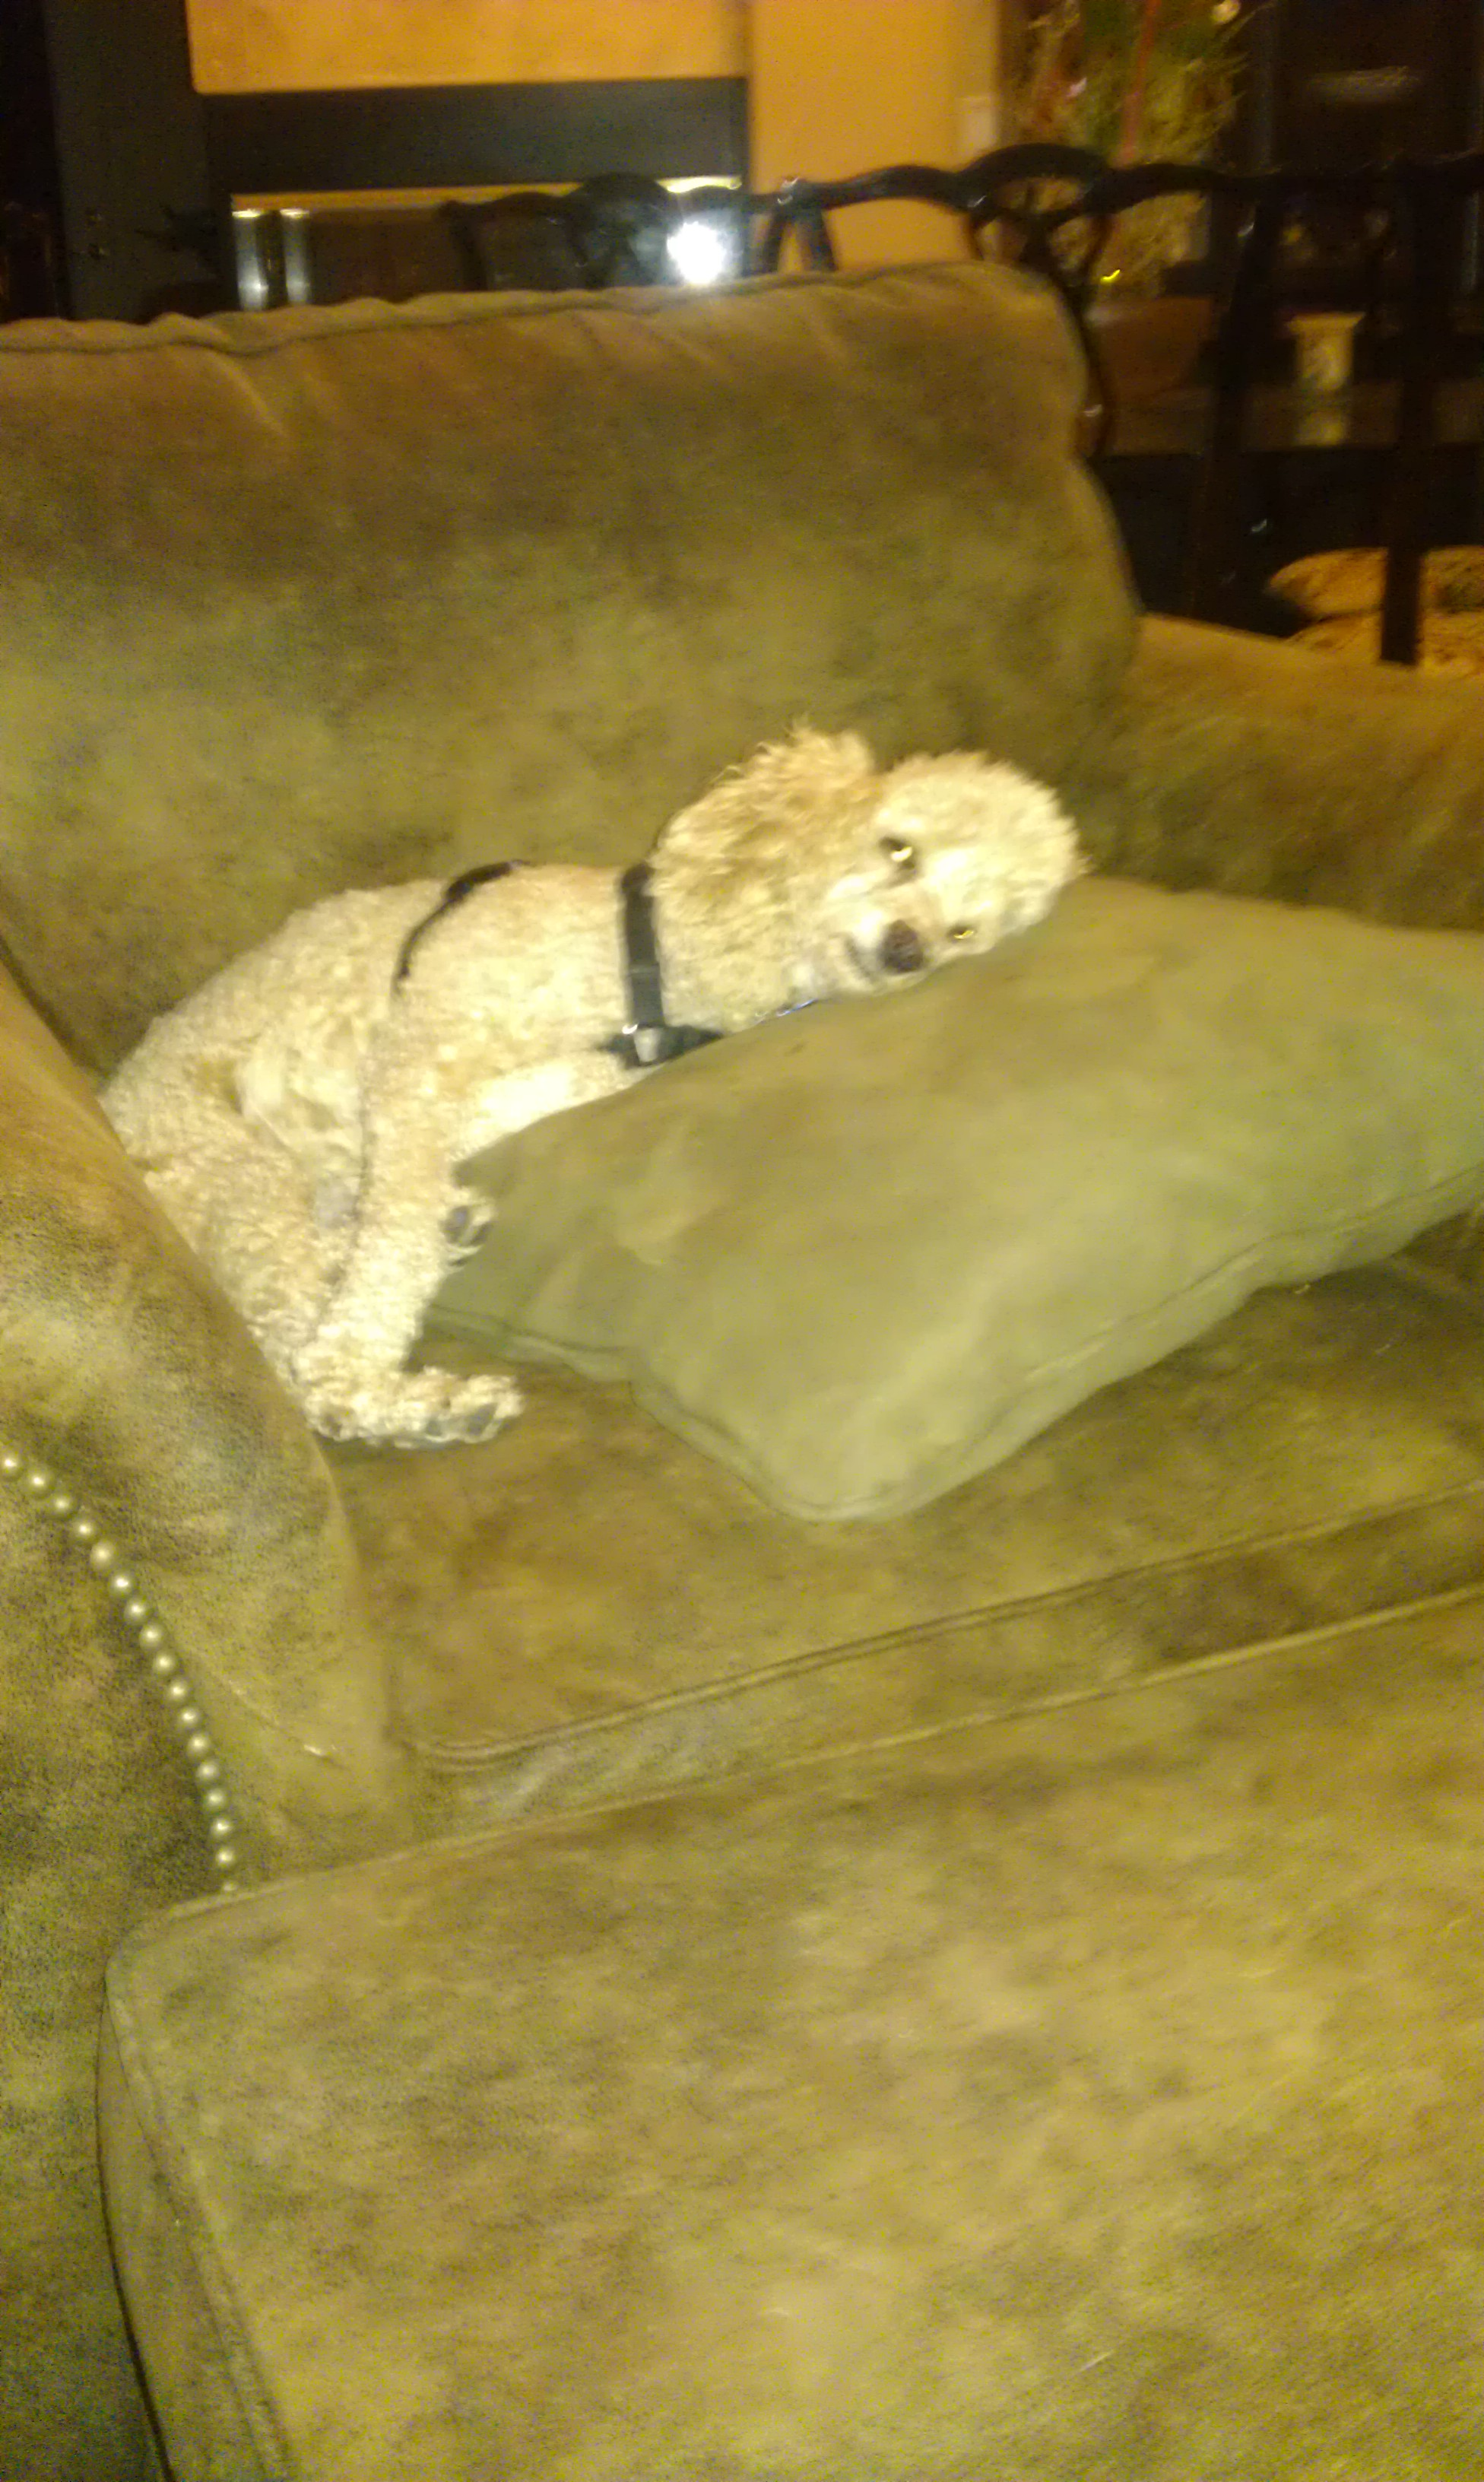 My miniature poodle Tanner